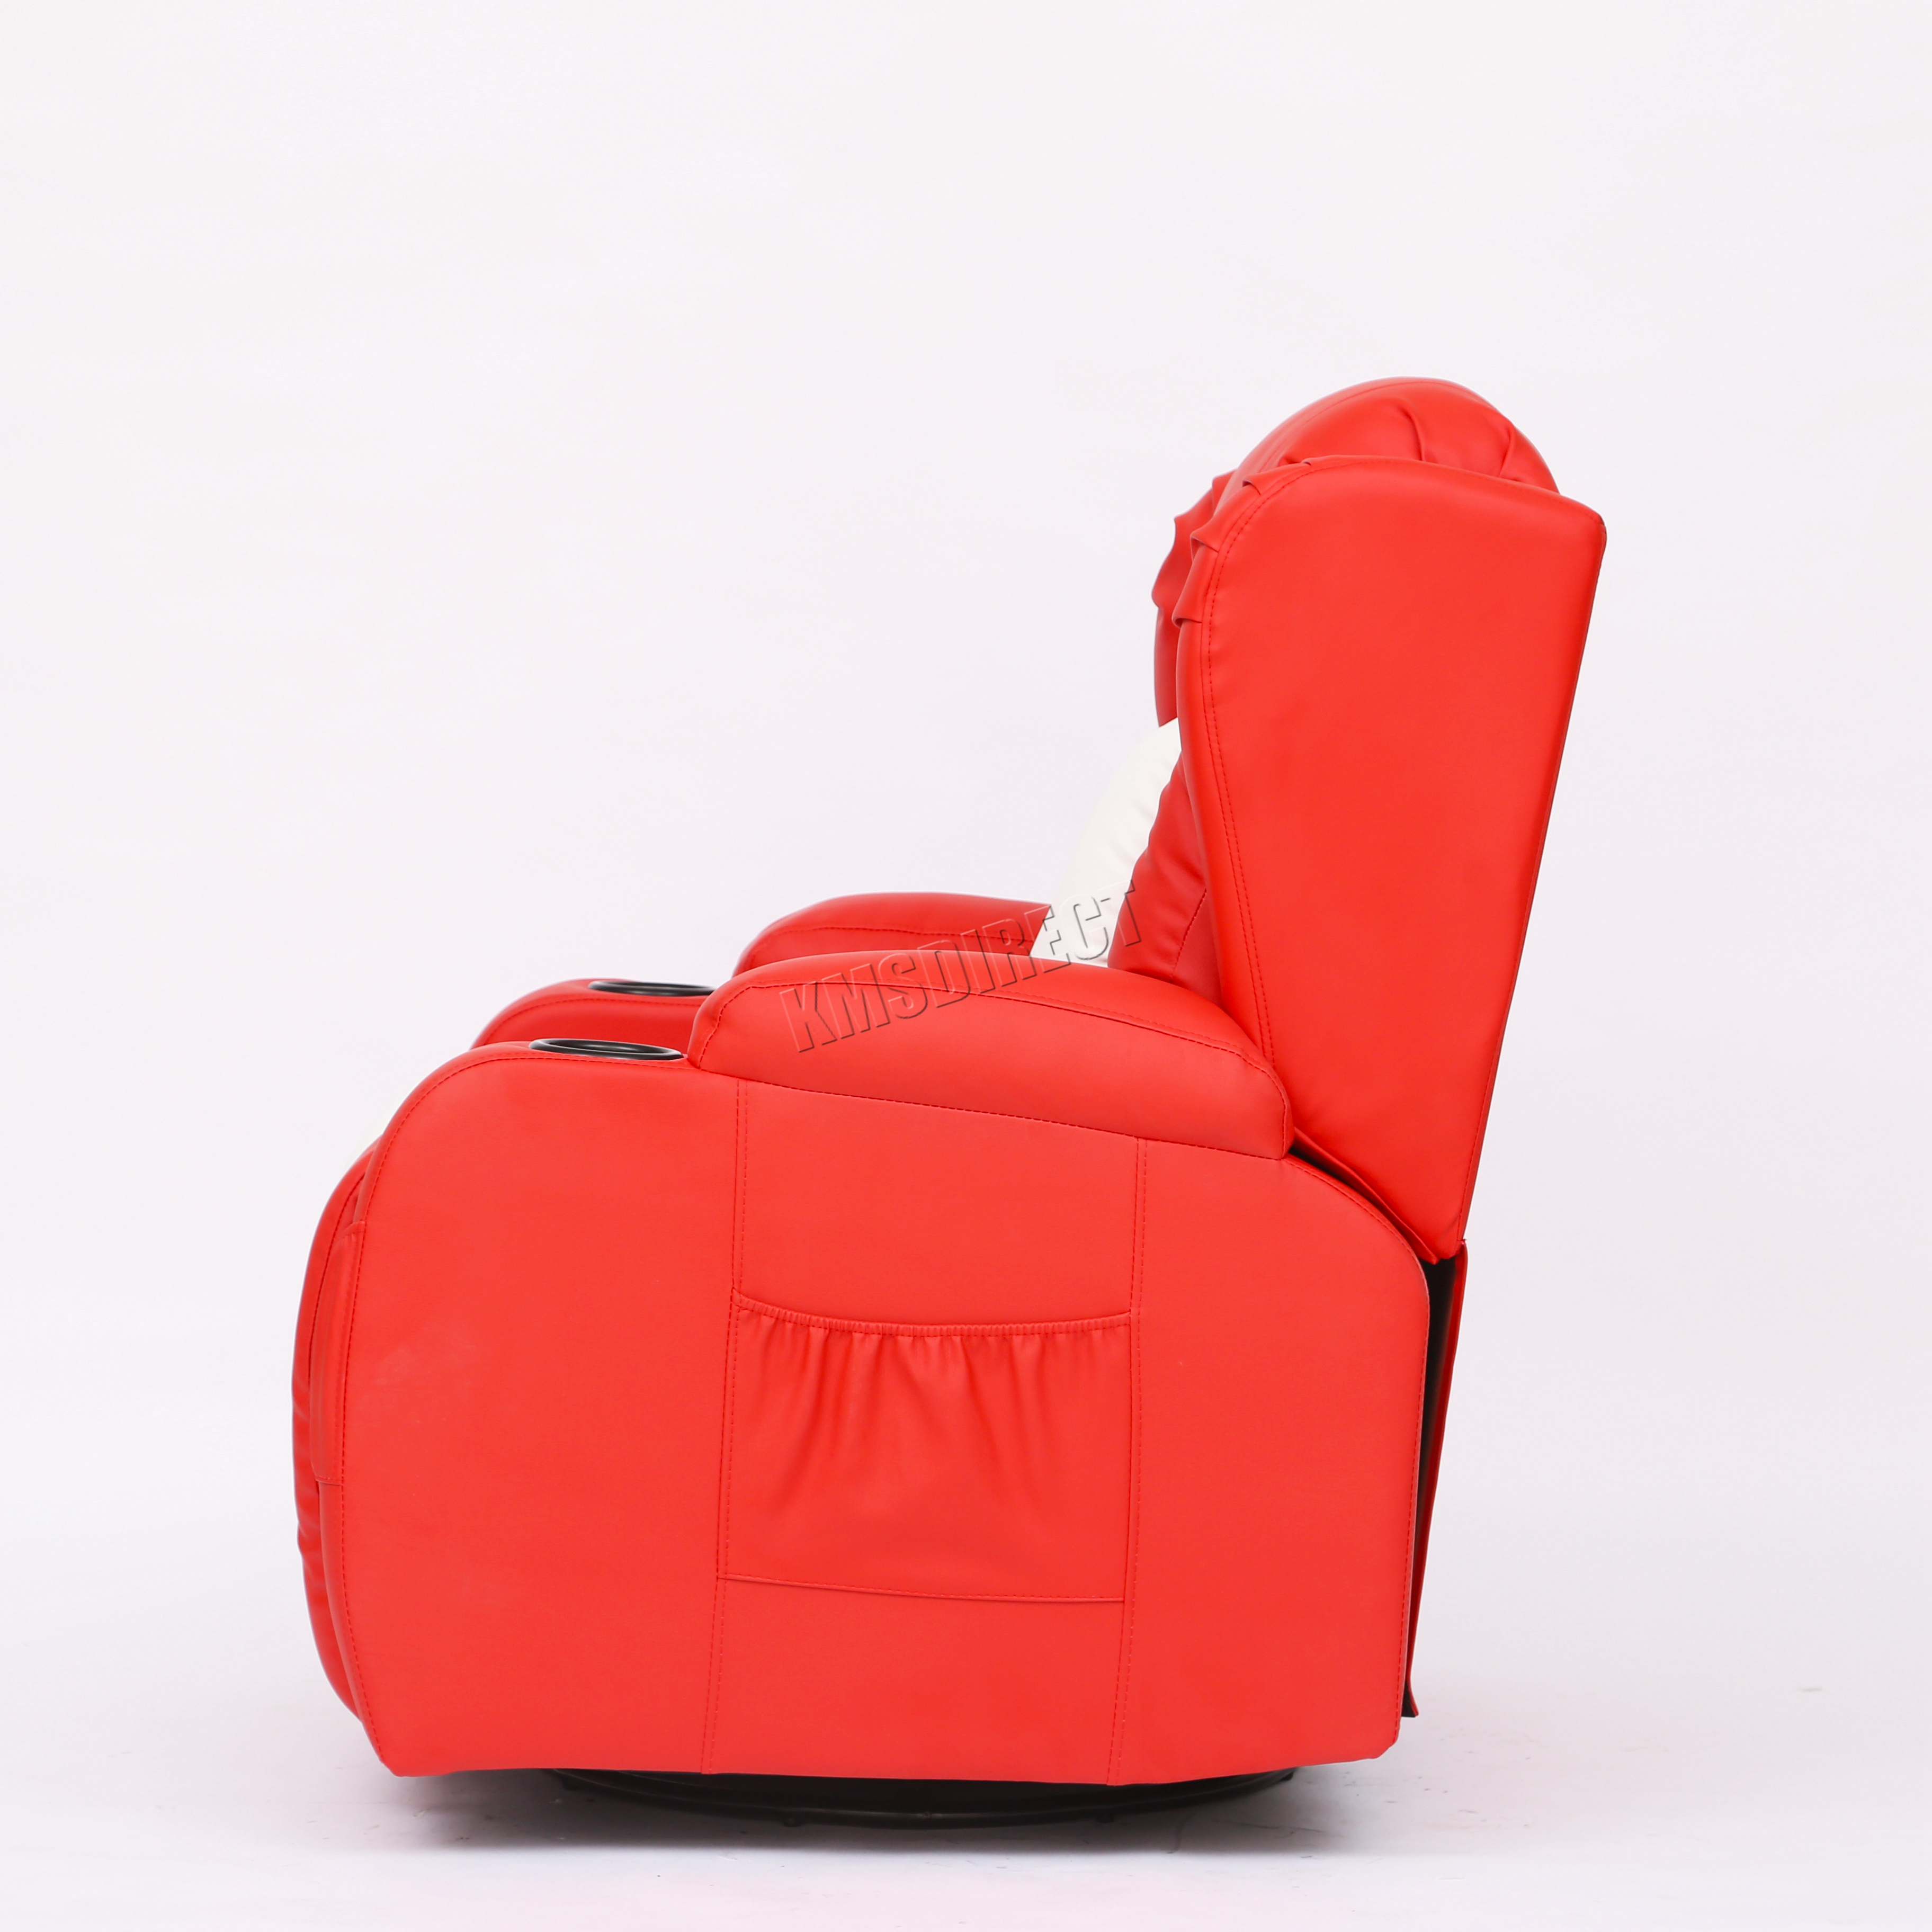 Foxhunter leather massage recliner sofa chair swivel for Red white sofa